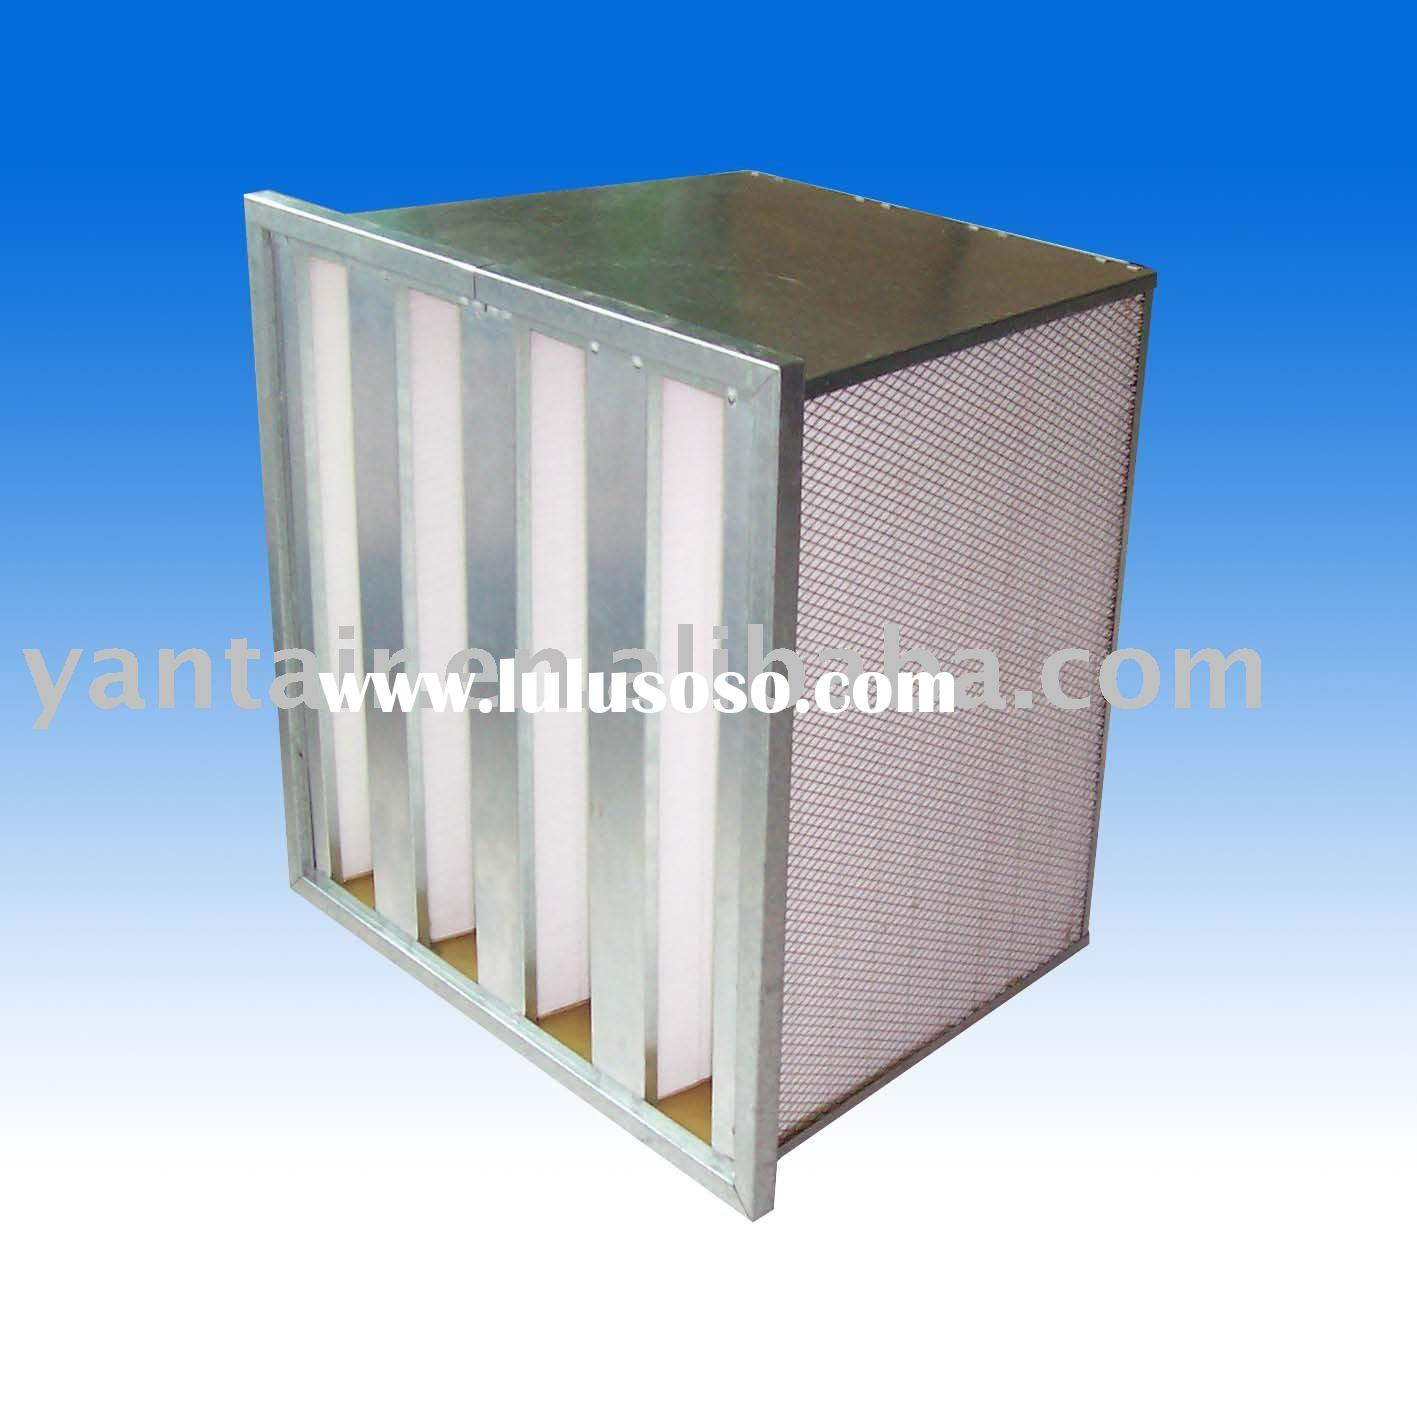 Air Handling Unit With Hepa Filter